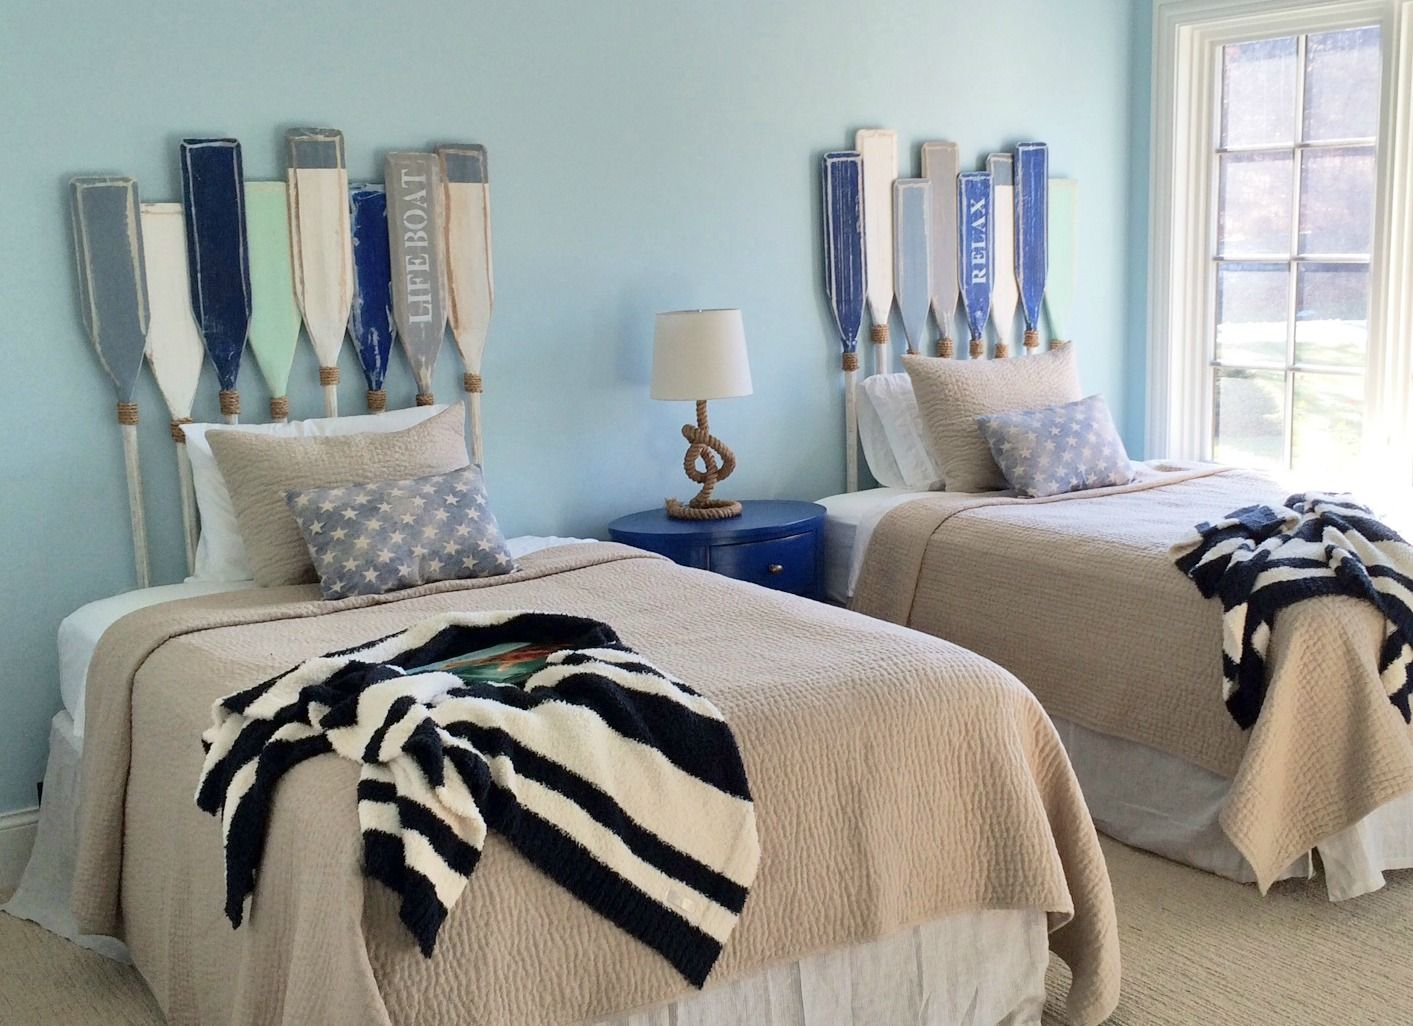 How Cool Is This Decorating Idea A Custom Built Beachy Guest Bedroom Headboard Created Out Of The Oa Beach Bedroom Decor Beach Bedroom Beach Theme Living Room